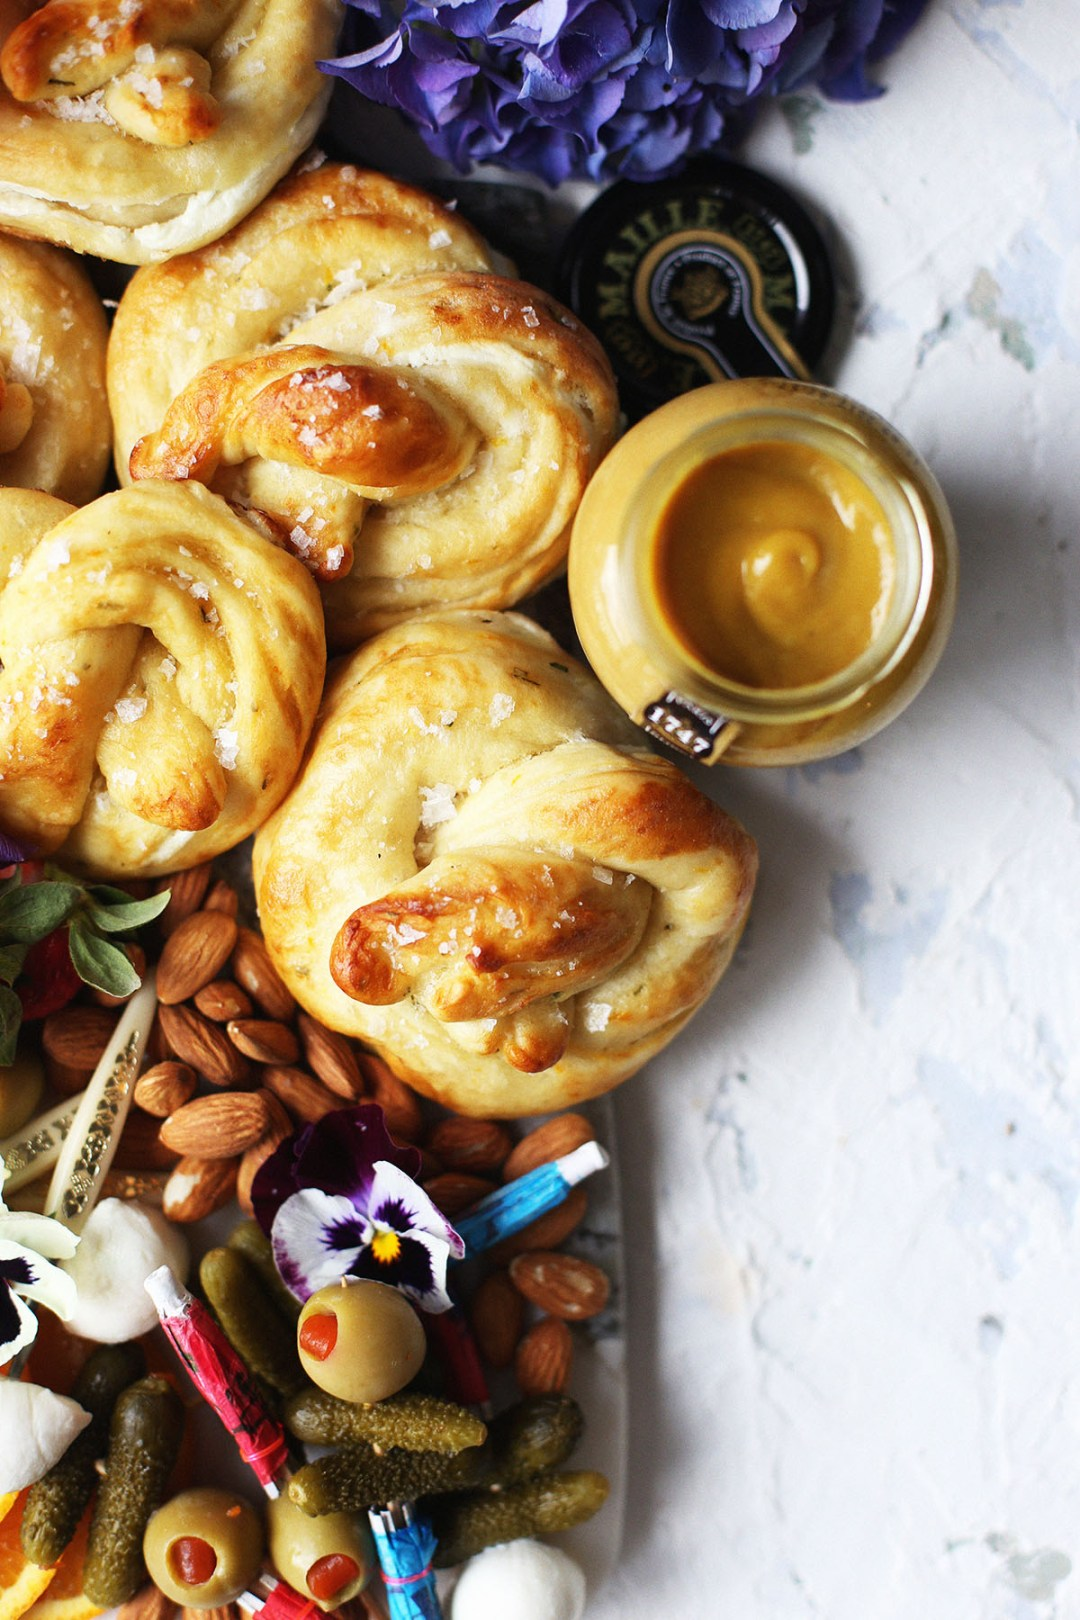 Orange Rosemary and Goat Cheese Stuffed Soft Pretzels